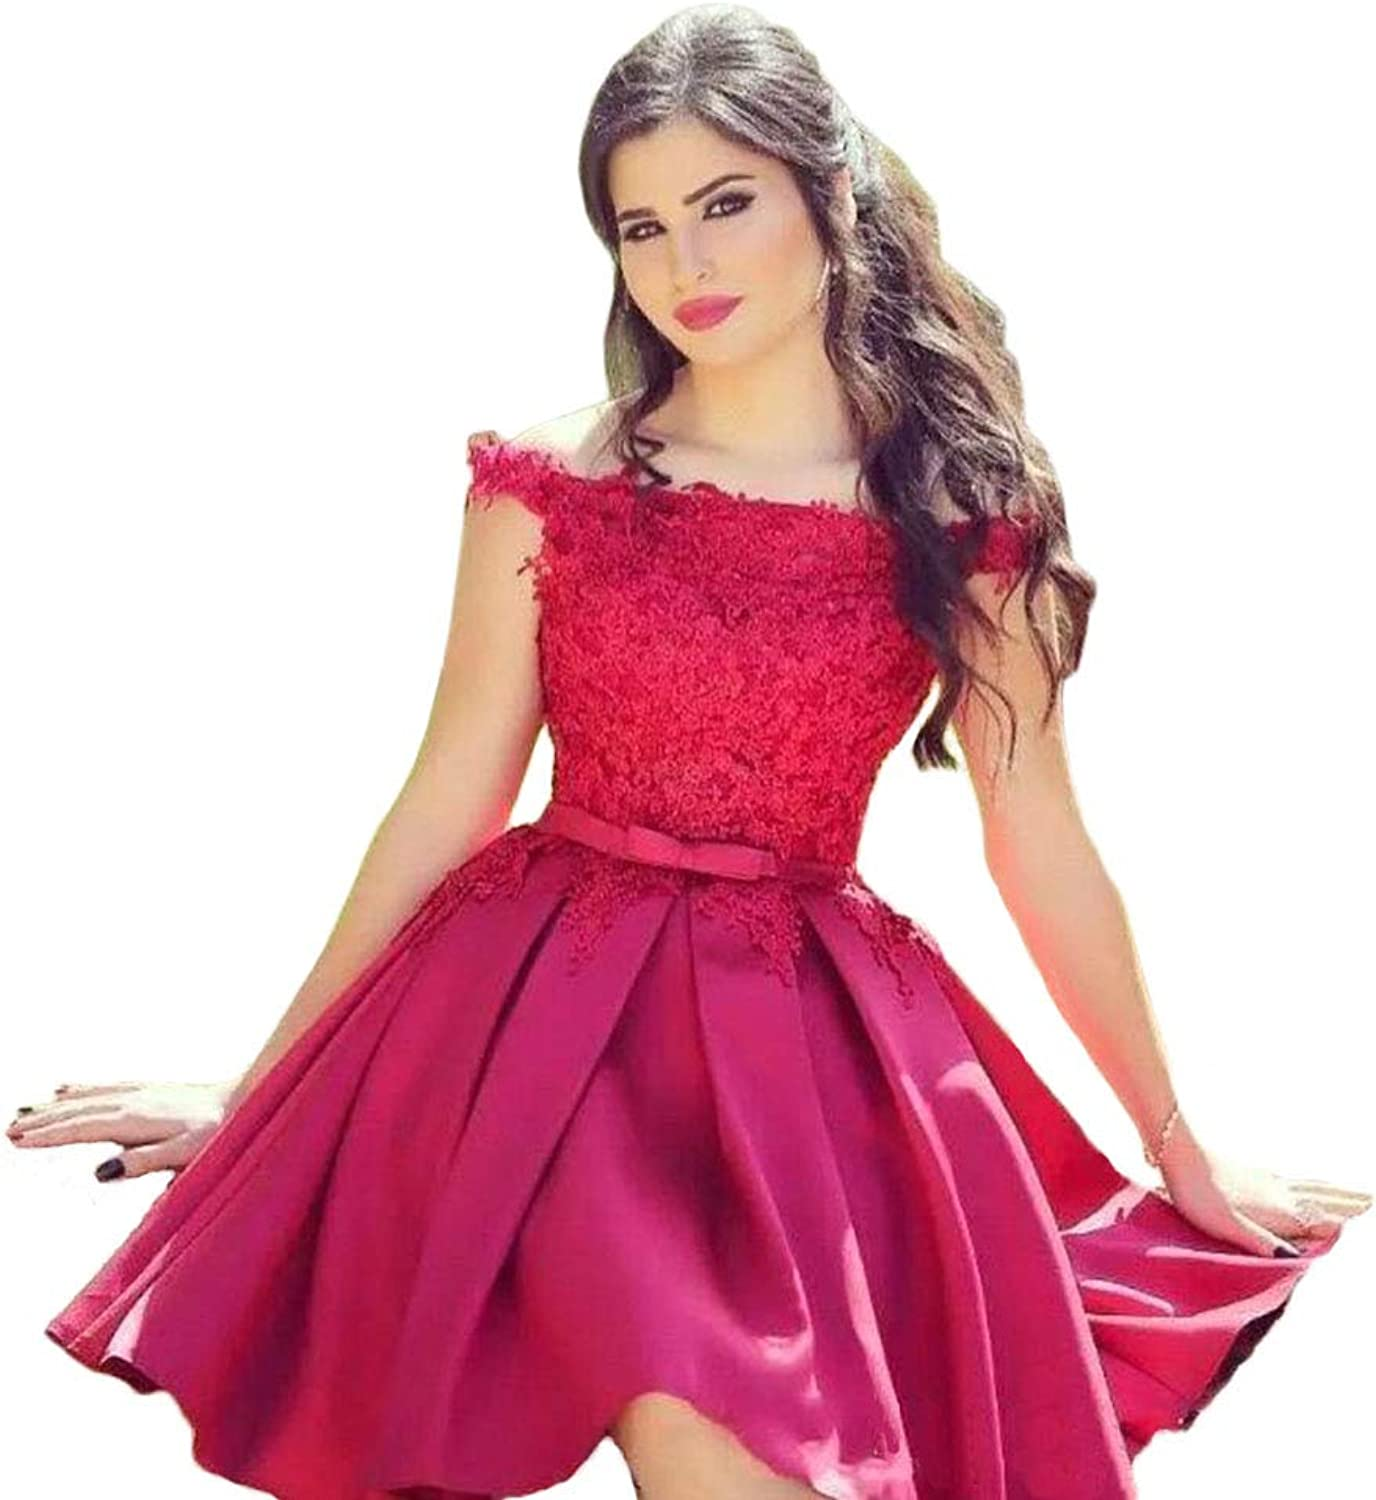 Tsbridal Knee Length Red Homecoming Dresses with Lace Appliques Prom Party Dresses Satin Bridesmaid Gown